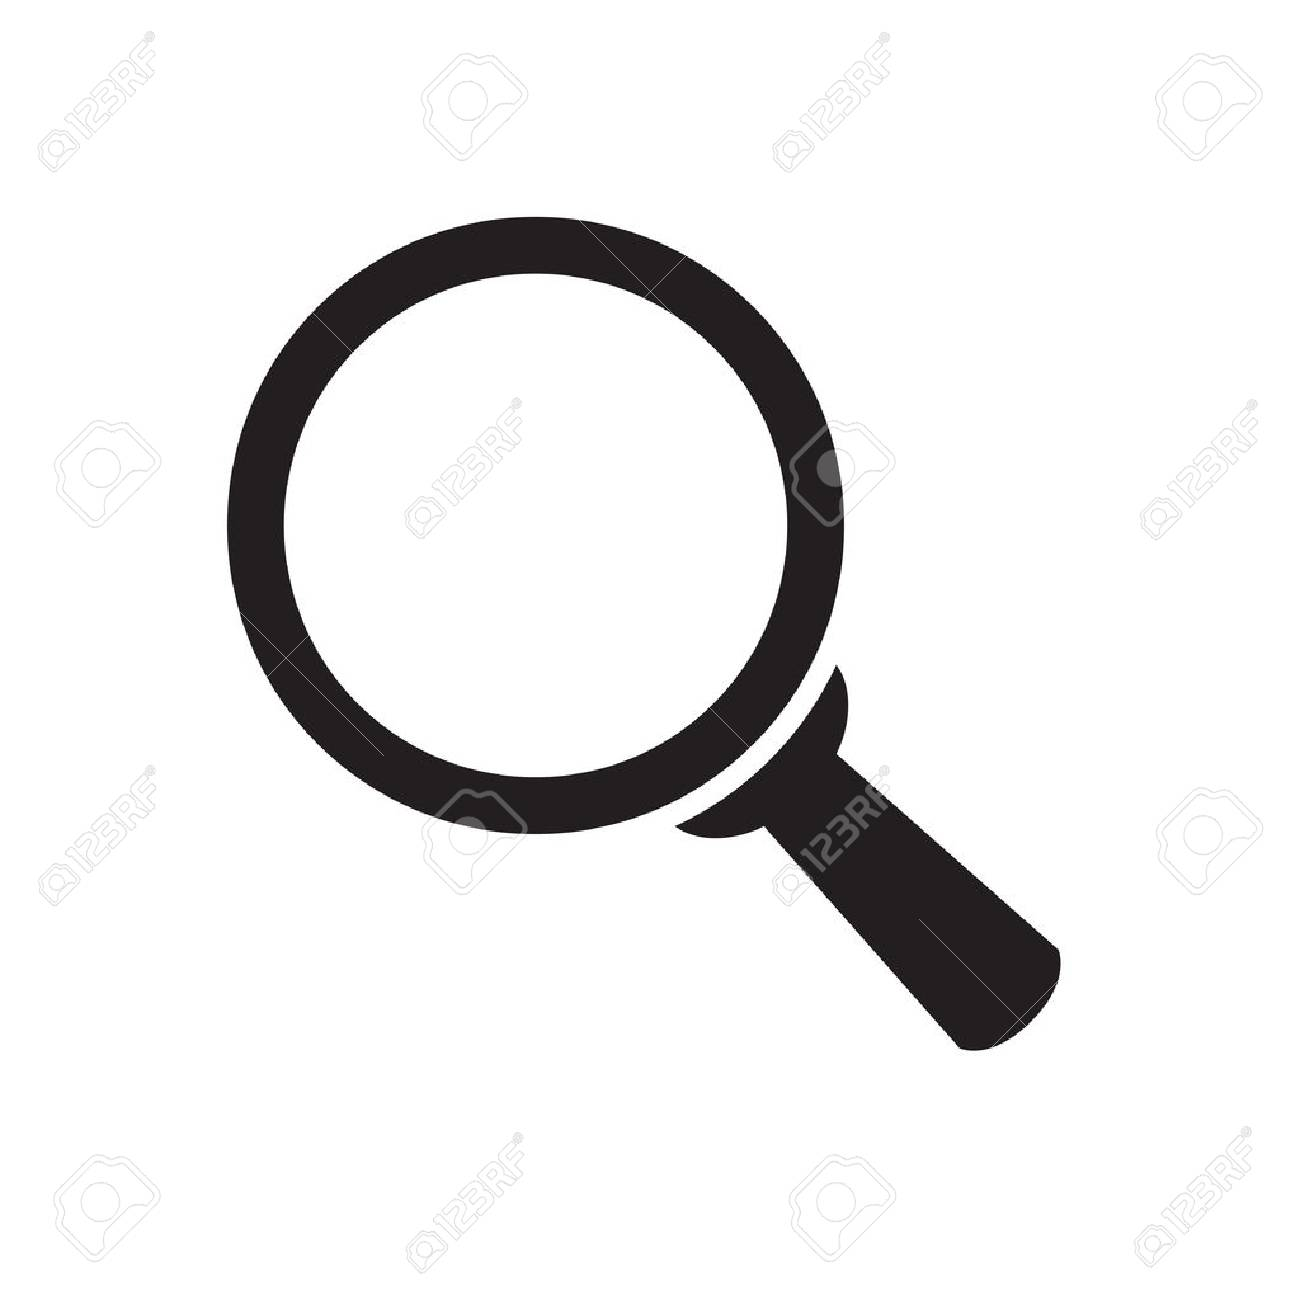 magnifying glass icon royalty free cliparts vectors and stock rh 123rf com vector image magnifying glass vector image magnifying glass